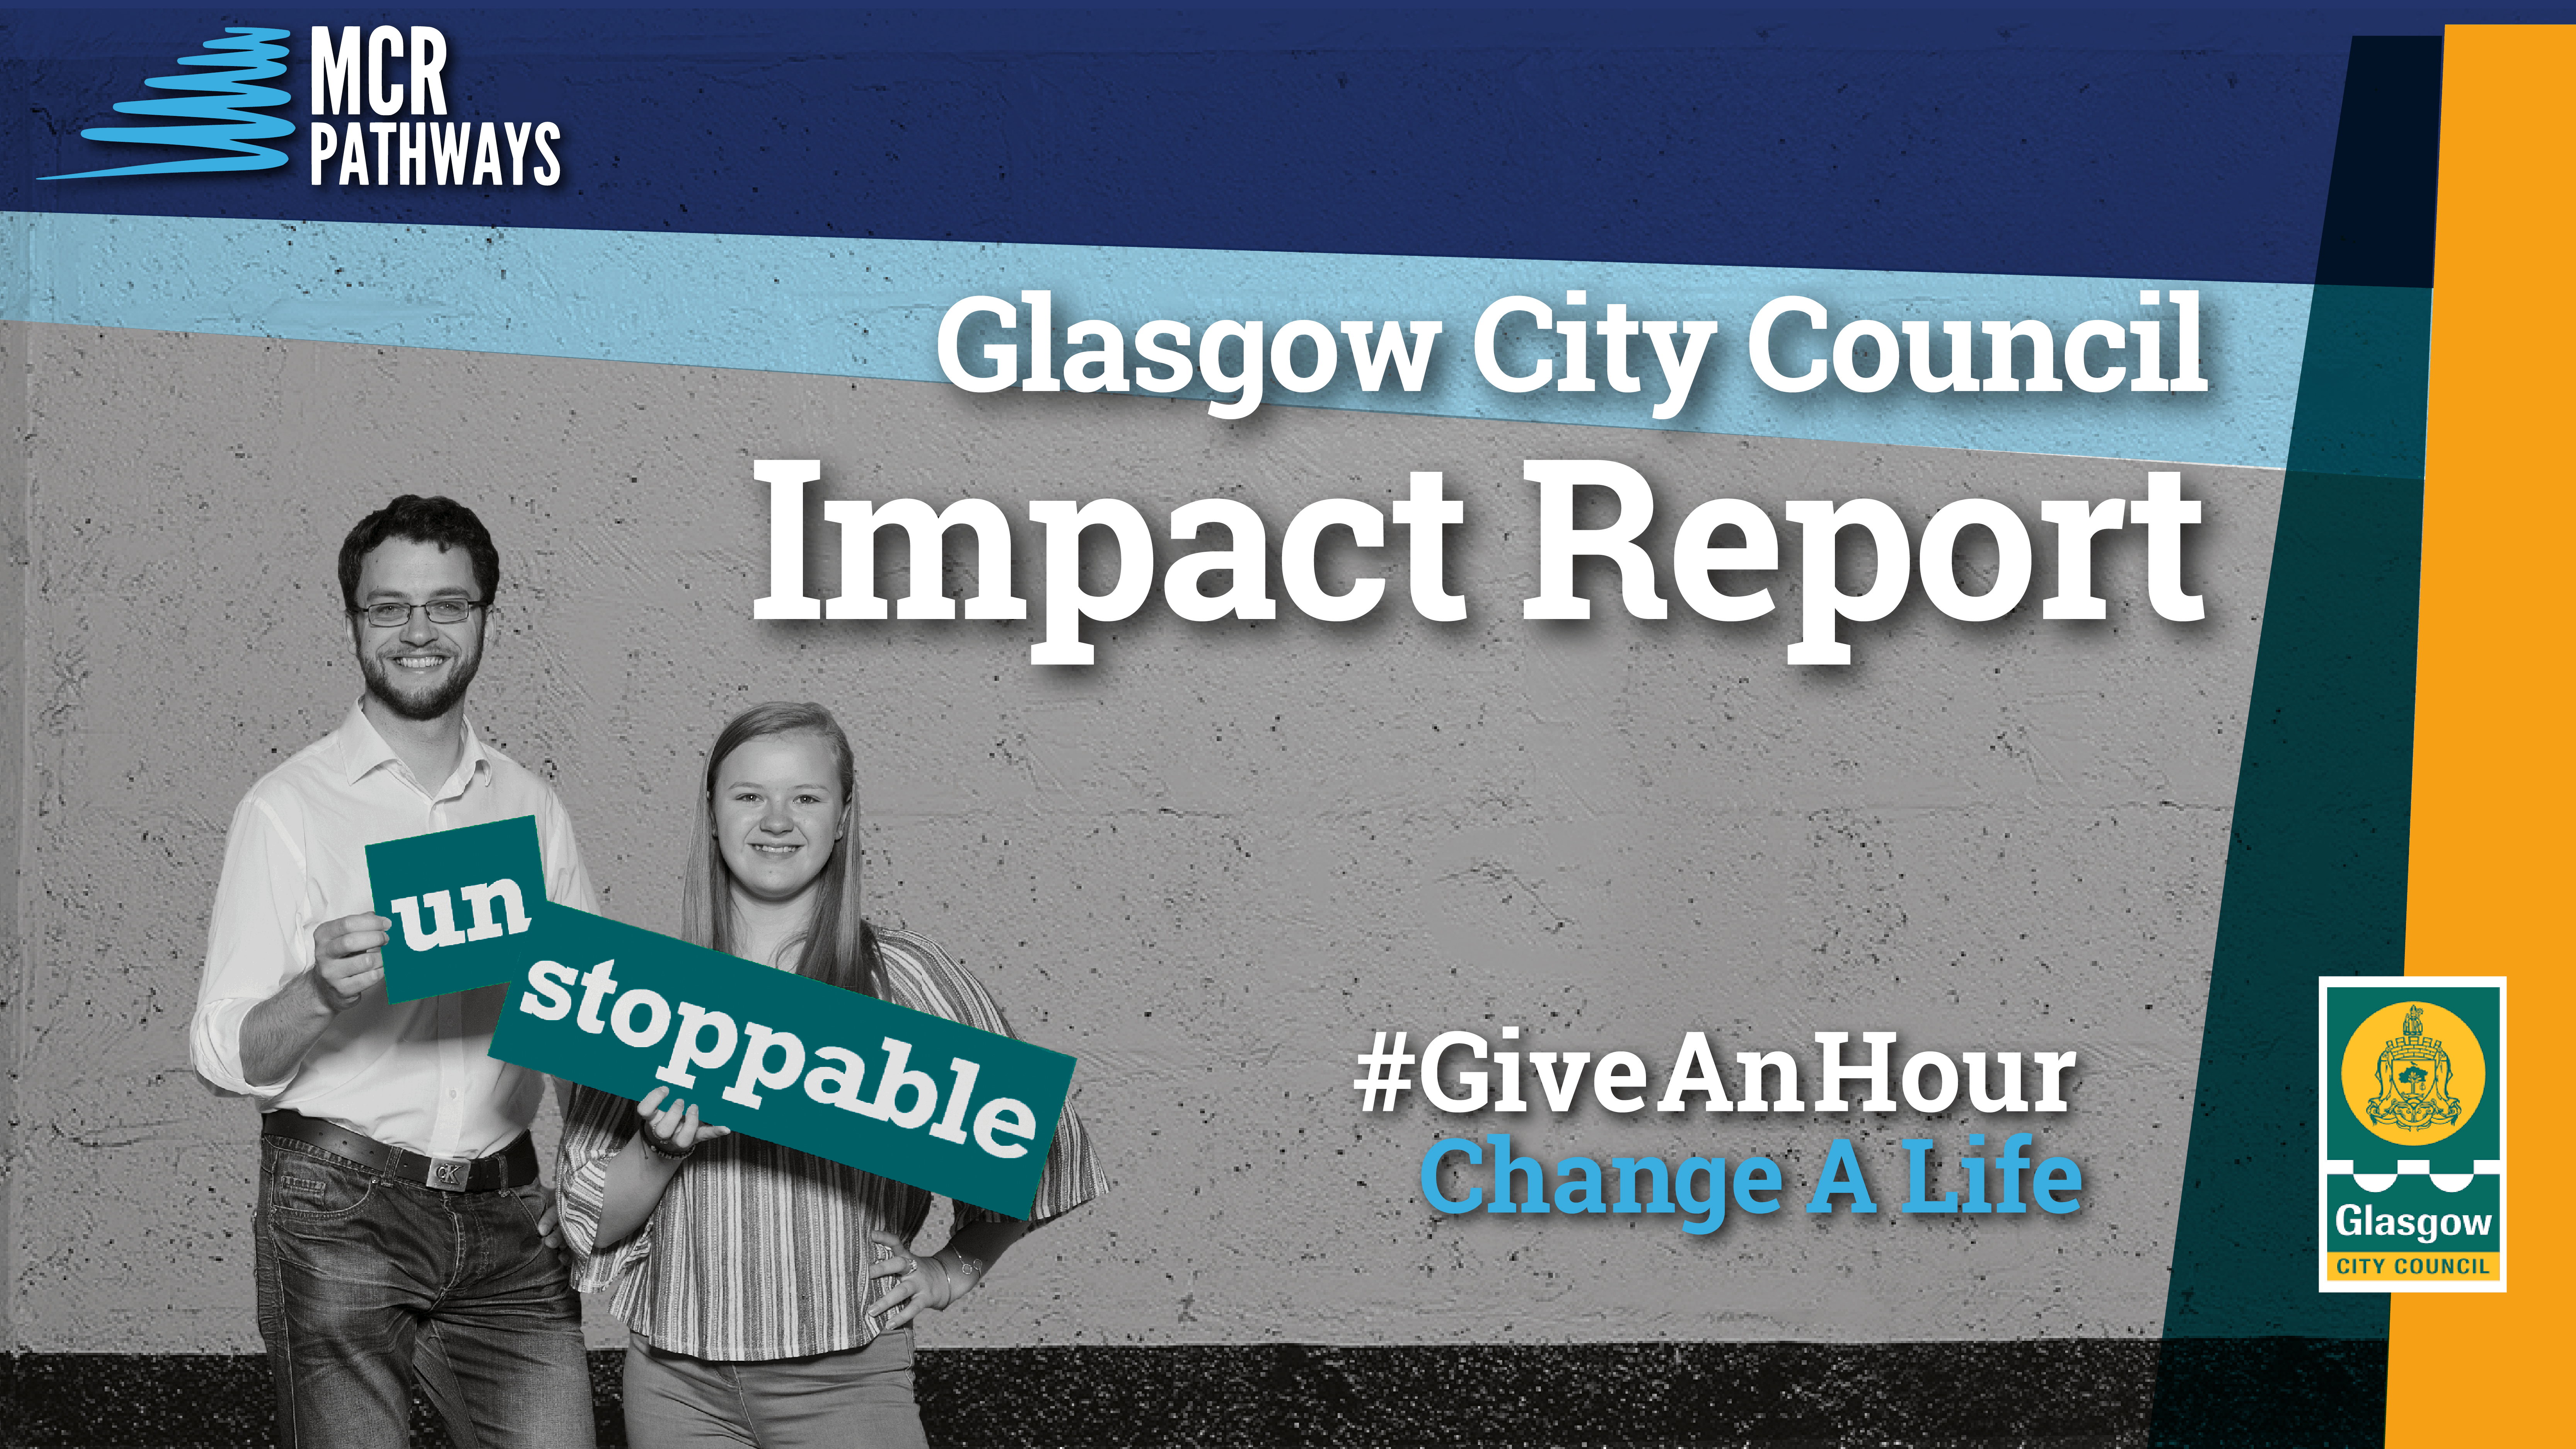 Glasgow City Council Impact Report 2018 Blog Header